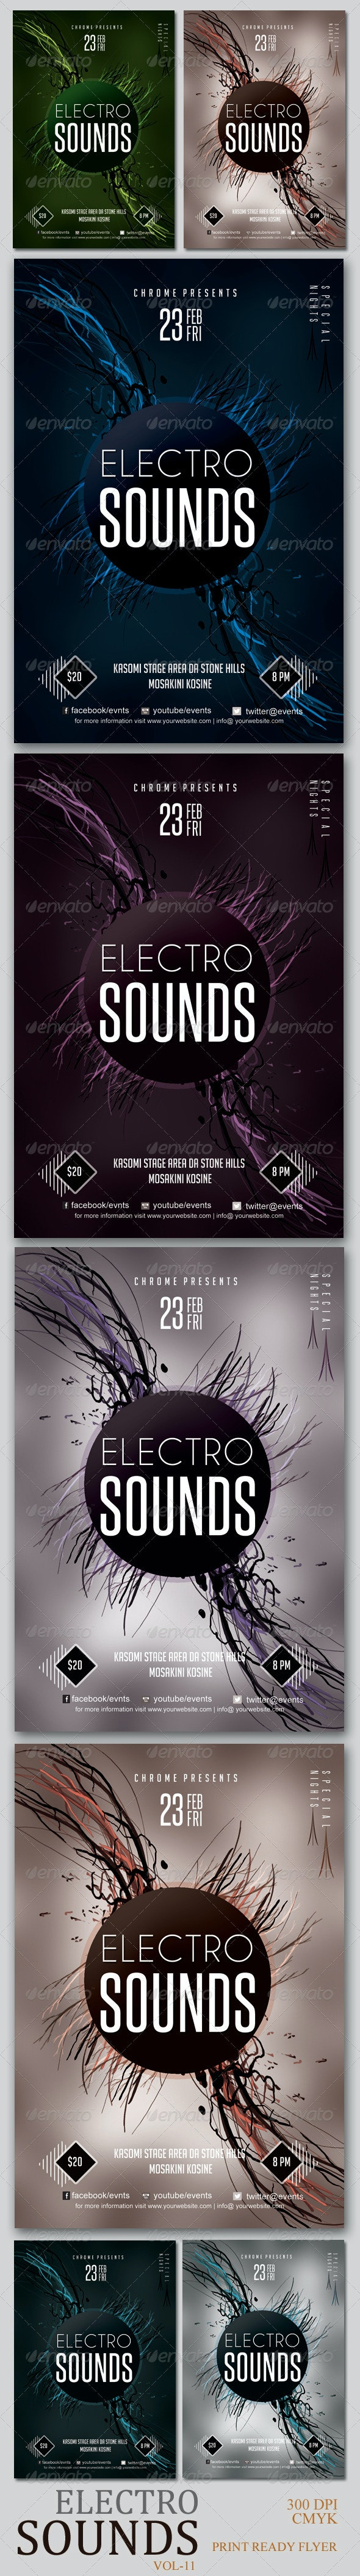 Electro Sounds Futuristic Flyer 11 - Clubs & Parties Events